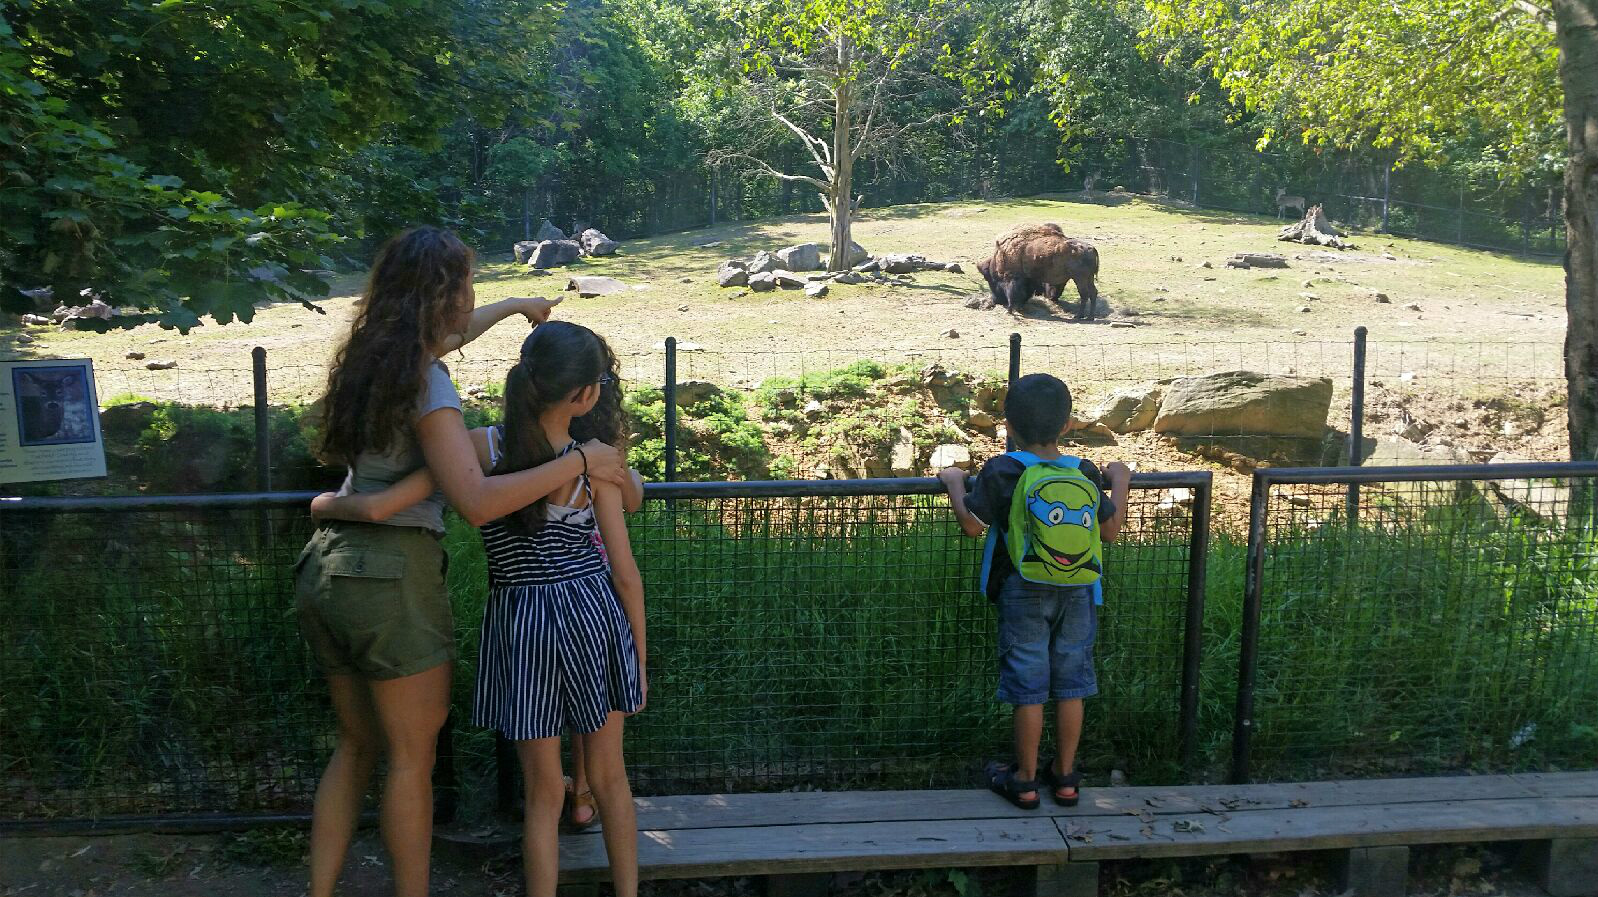 What I learned at the zoo with my family